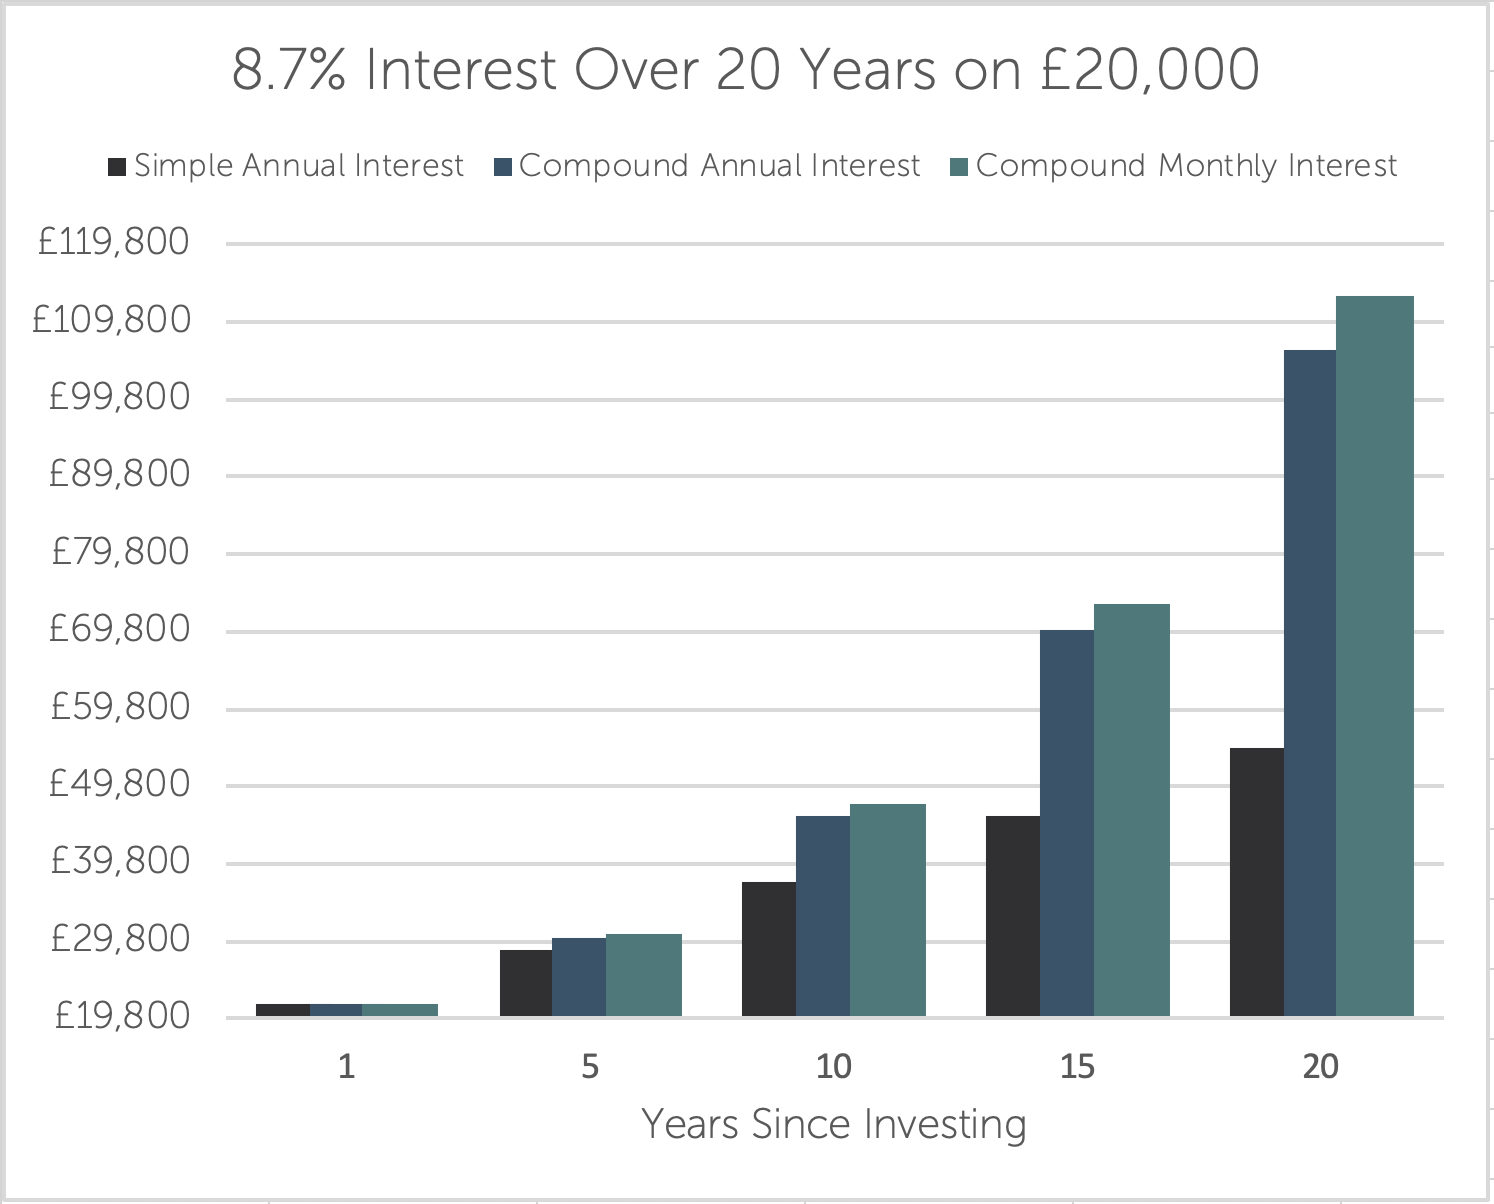 20 years, long term investment with high compound interest